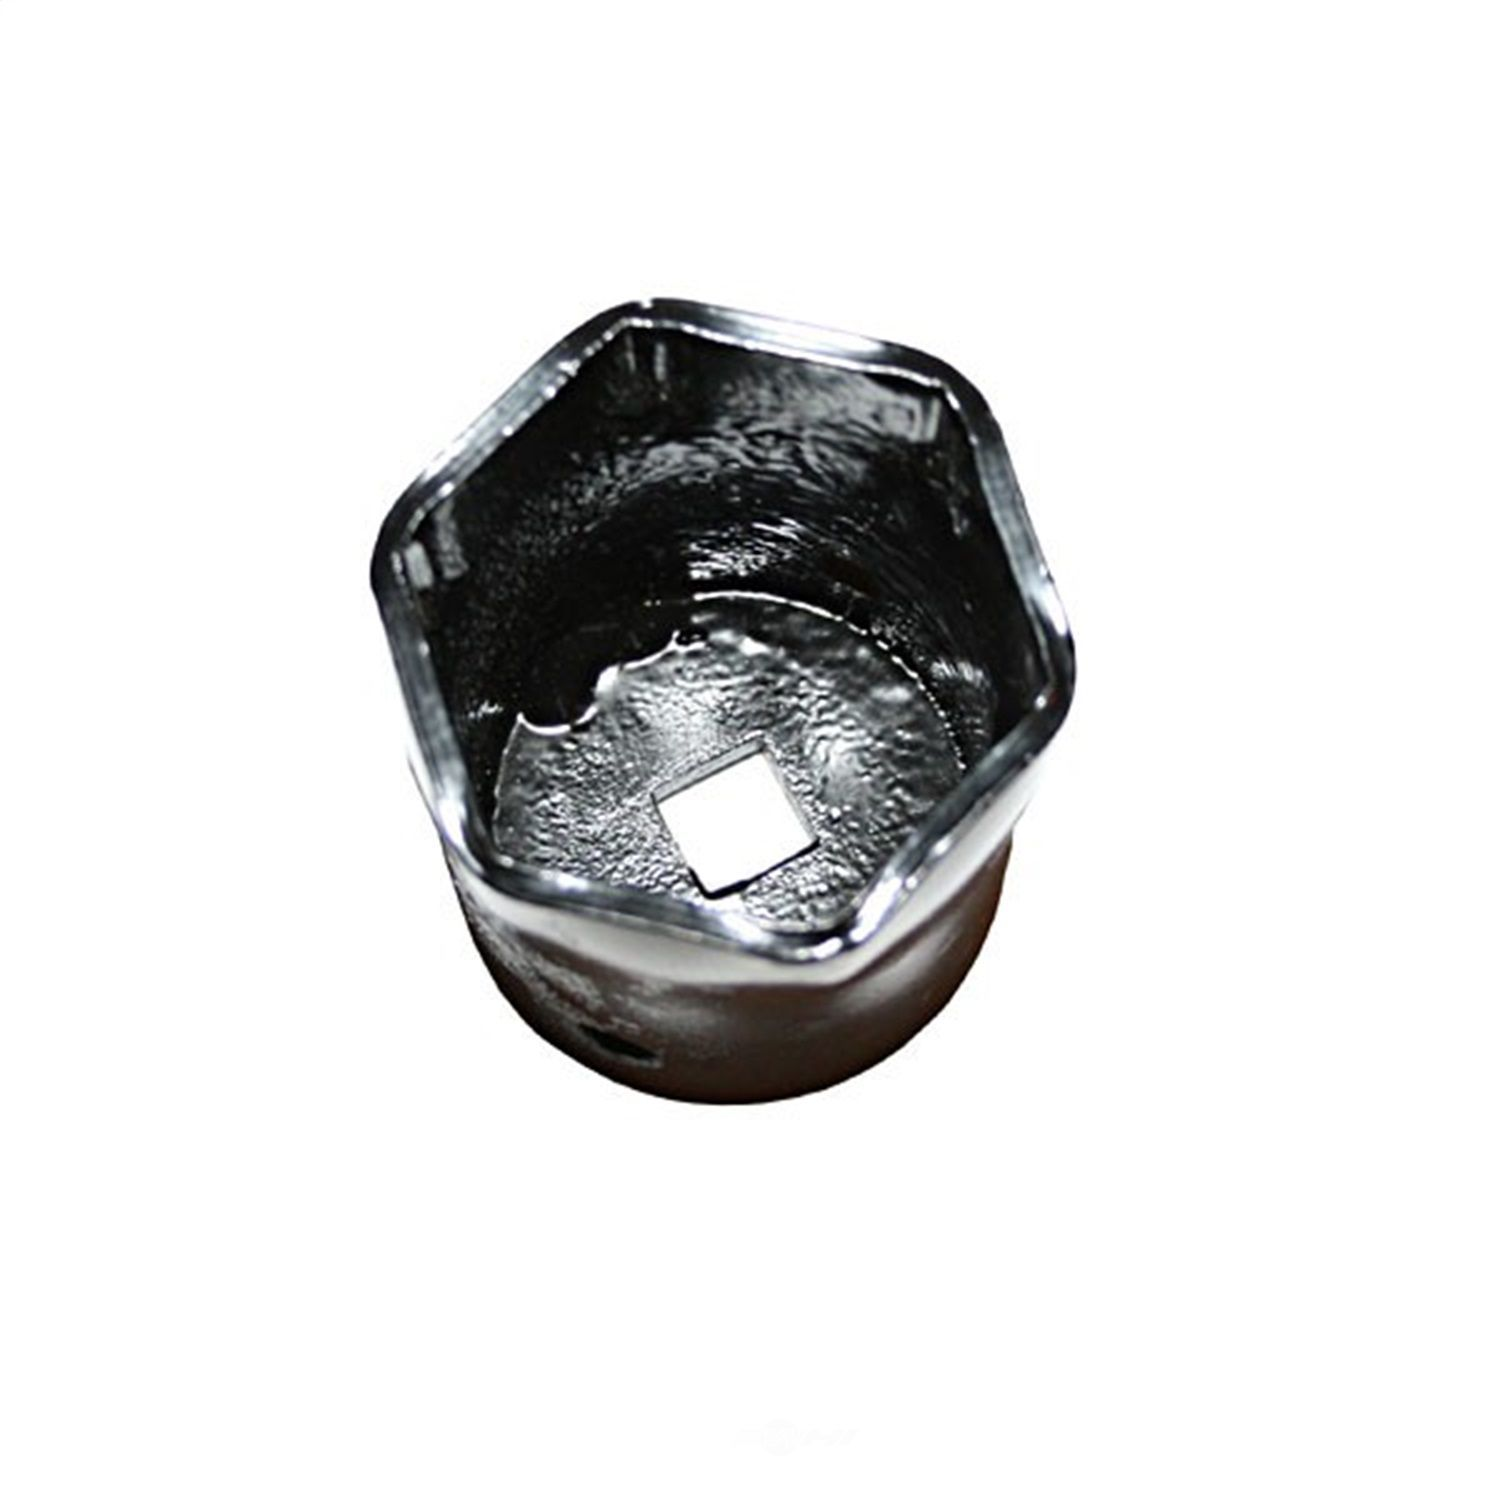 OMIX - Spindle Nut Socket - OMX 16711.01